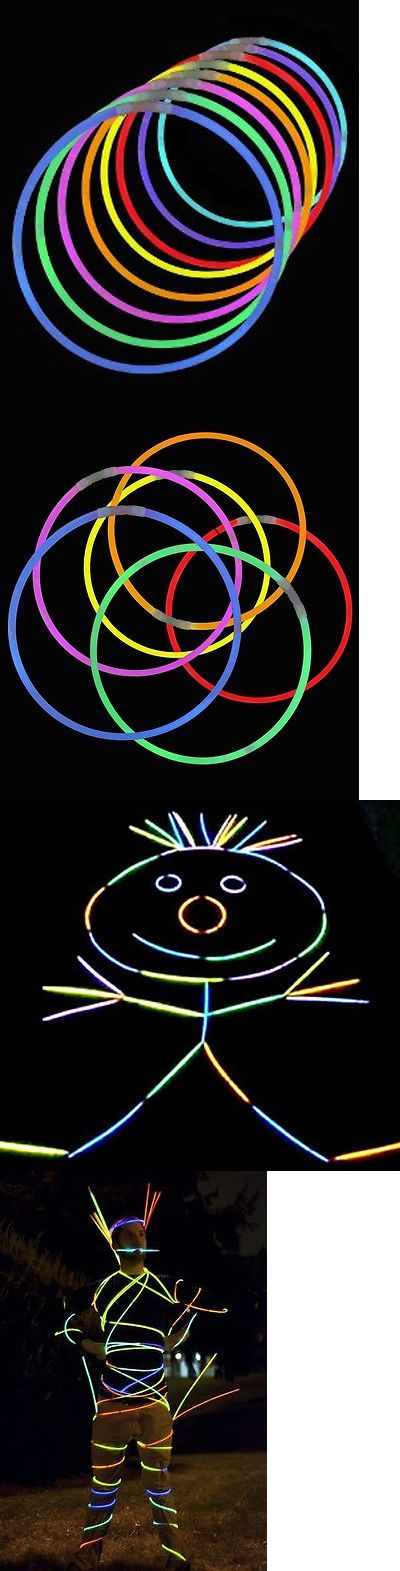 Novelty Vending Toys 51025: Weglow Brand Glow Stick Necklaces: 300 Pc, 22 Inch, Huge 6Mm Size, *Video* -> BUY IT NOW ONLY: $82.52 on eBay!